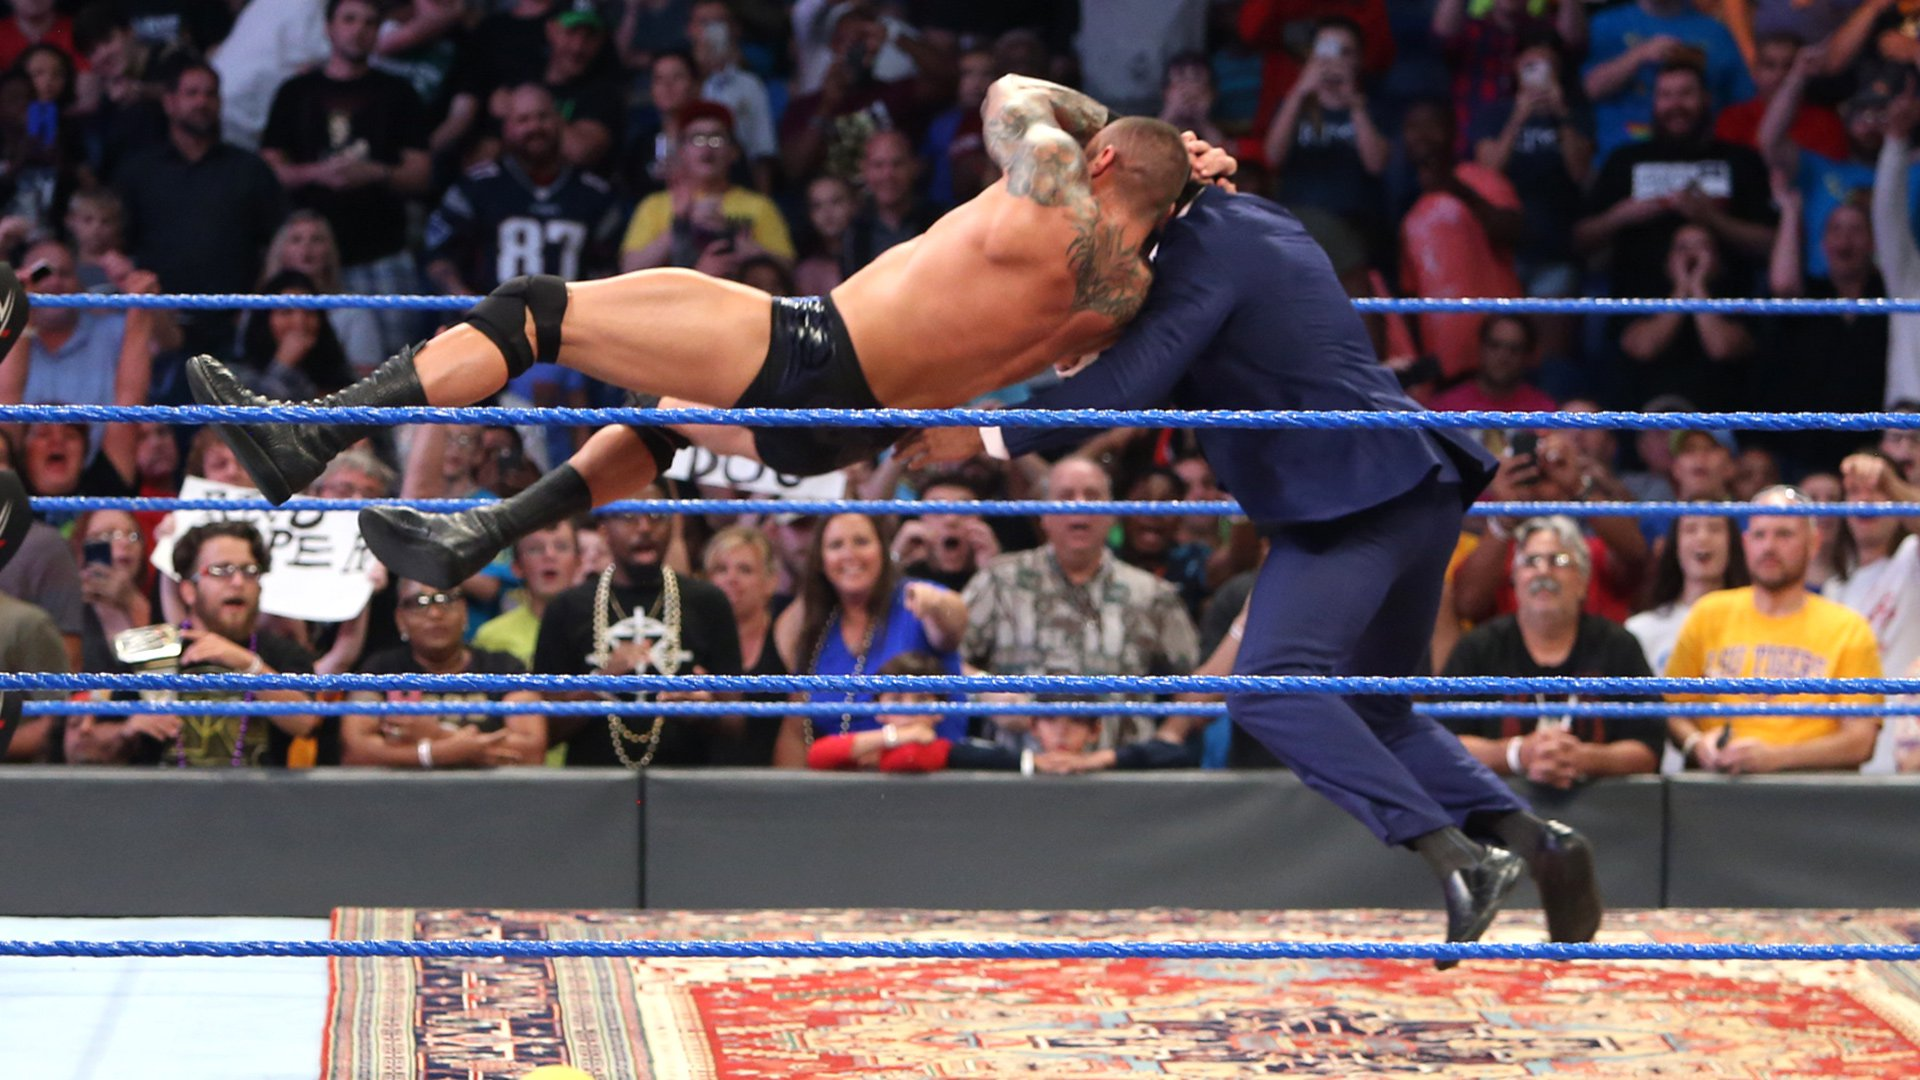 Randy Orton and Jinder Mahal come face to face before WWE Money in the Bank: photos